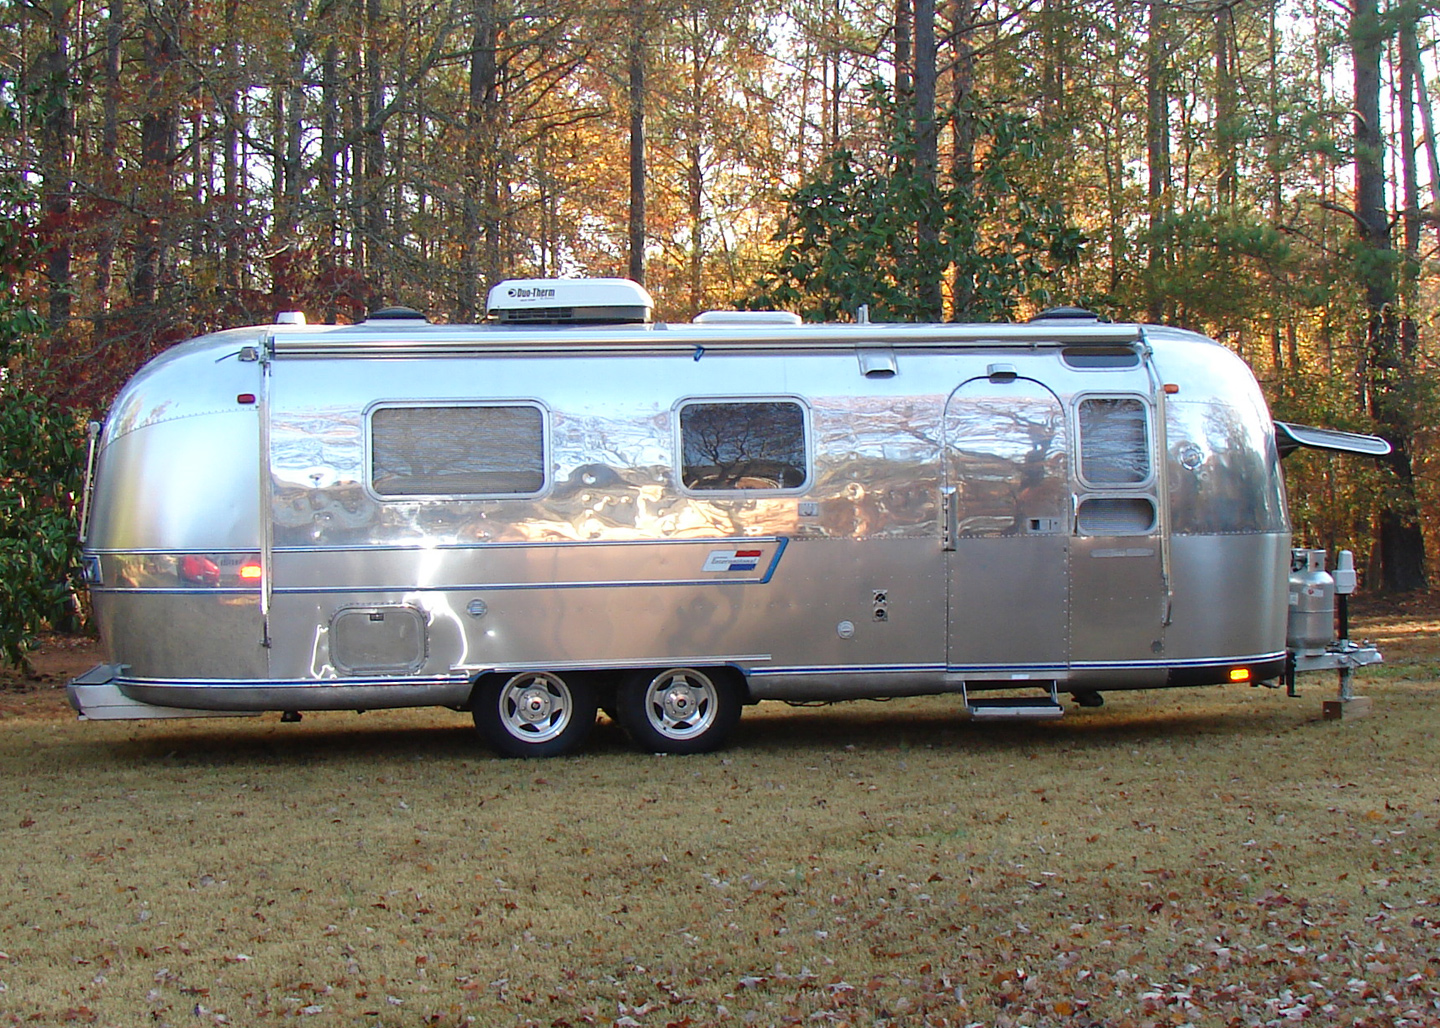 Click image for larger version  Name:Classic Rides Overlander 1.jpg Views:285 Size:944.8 KB ID:56068